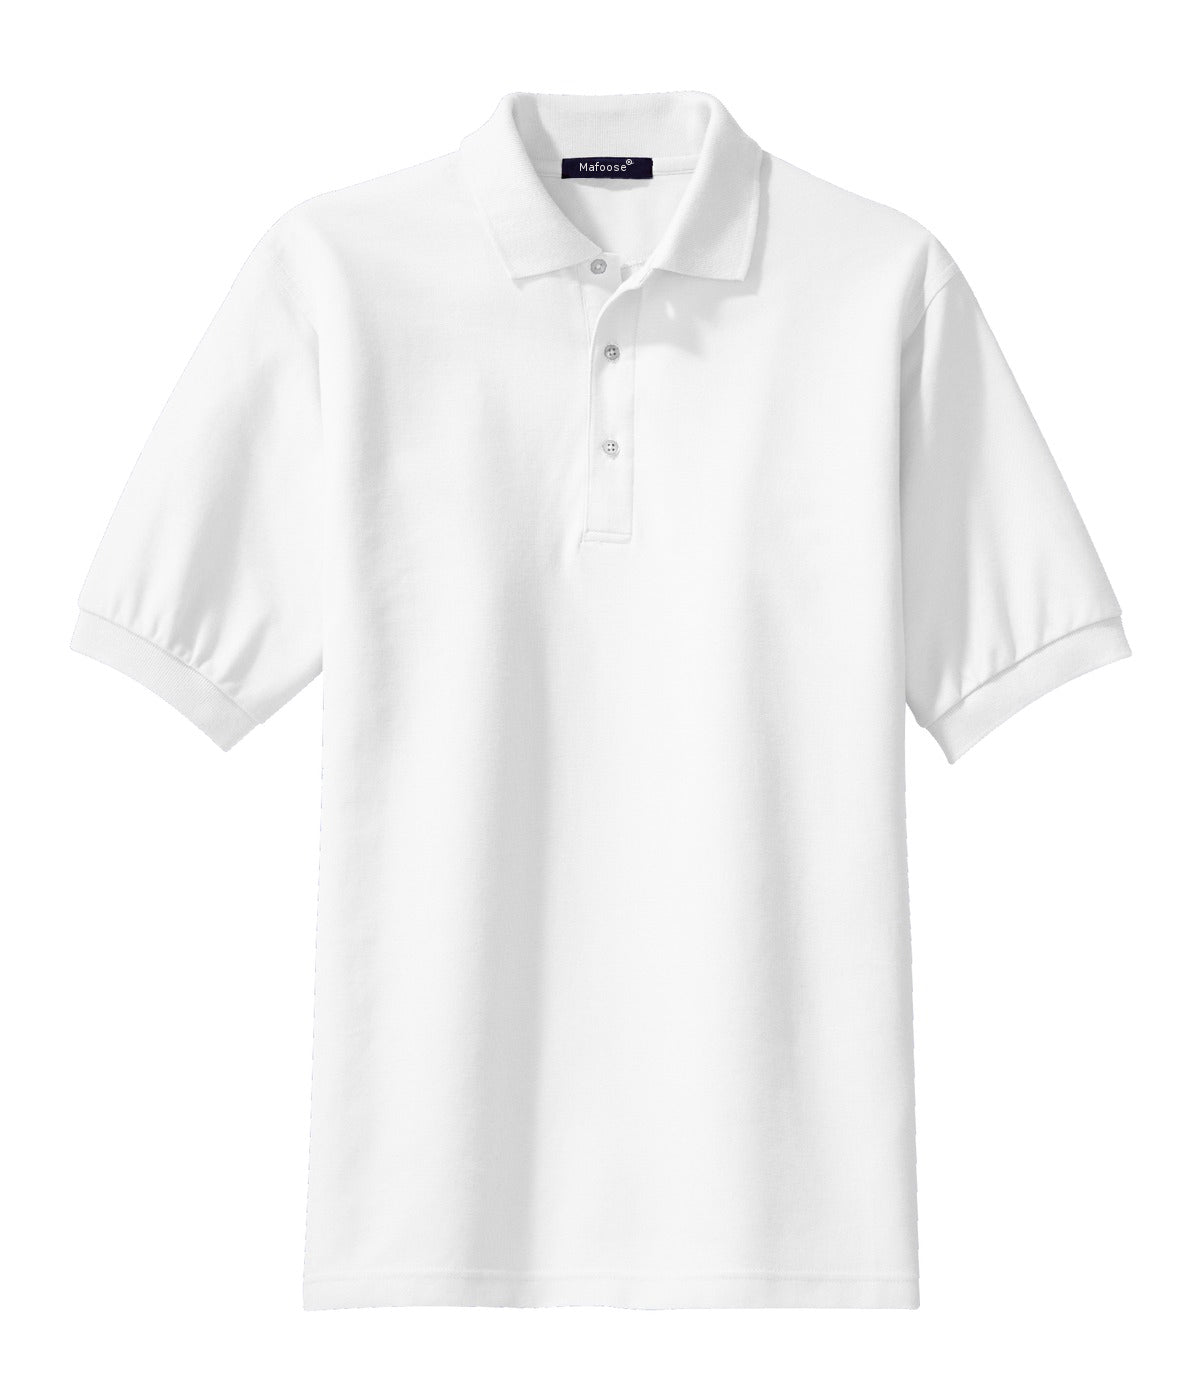 Mafoose Men's 100% Pima Cotton Polo Shirt White-Front